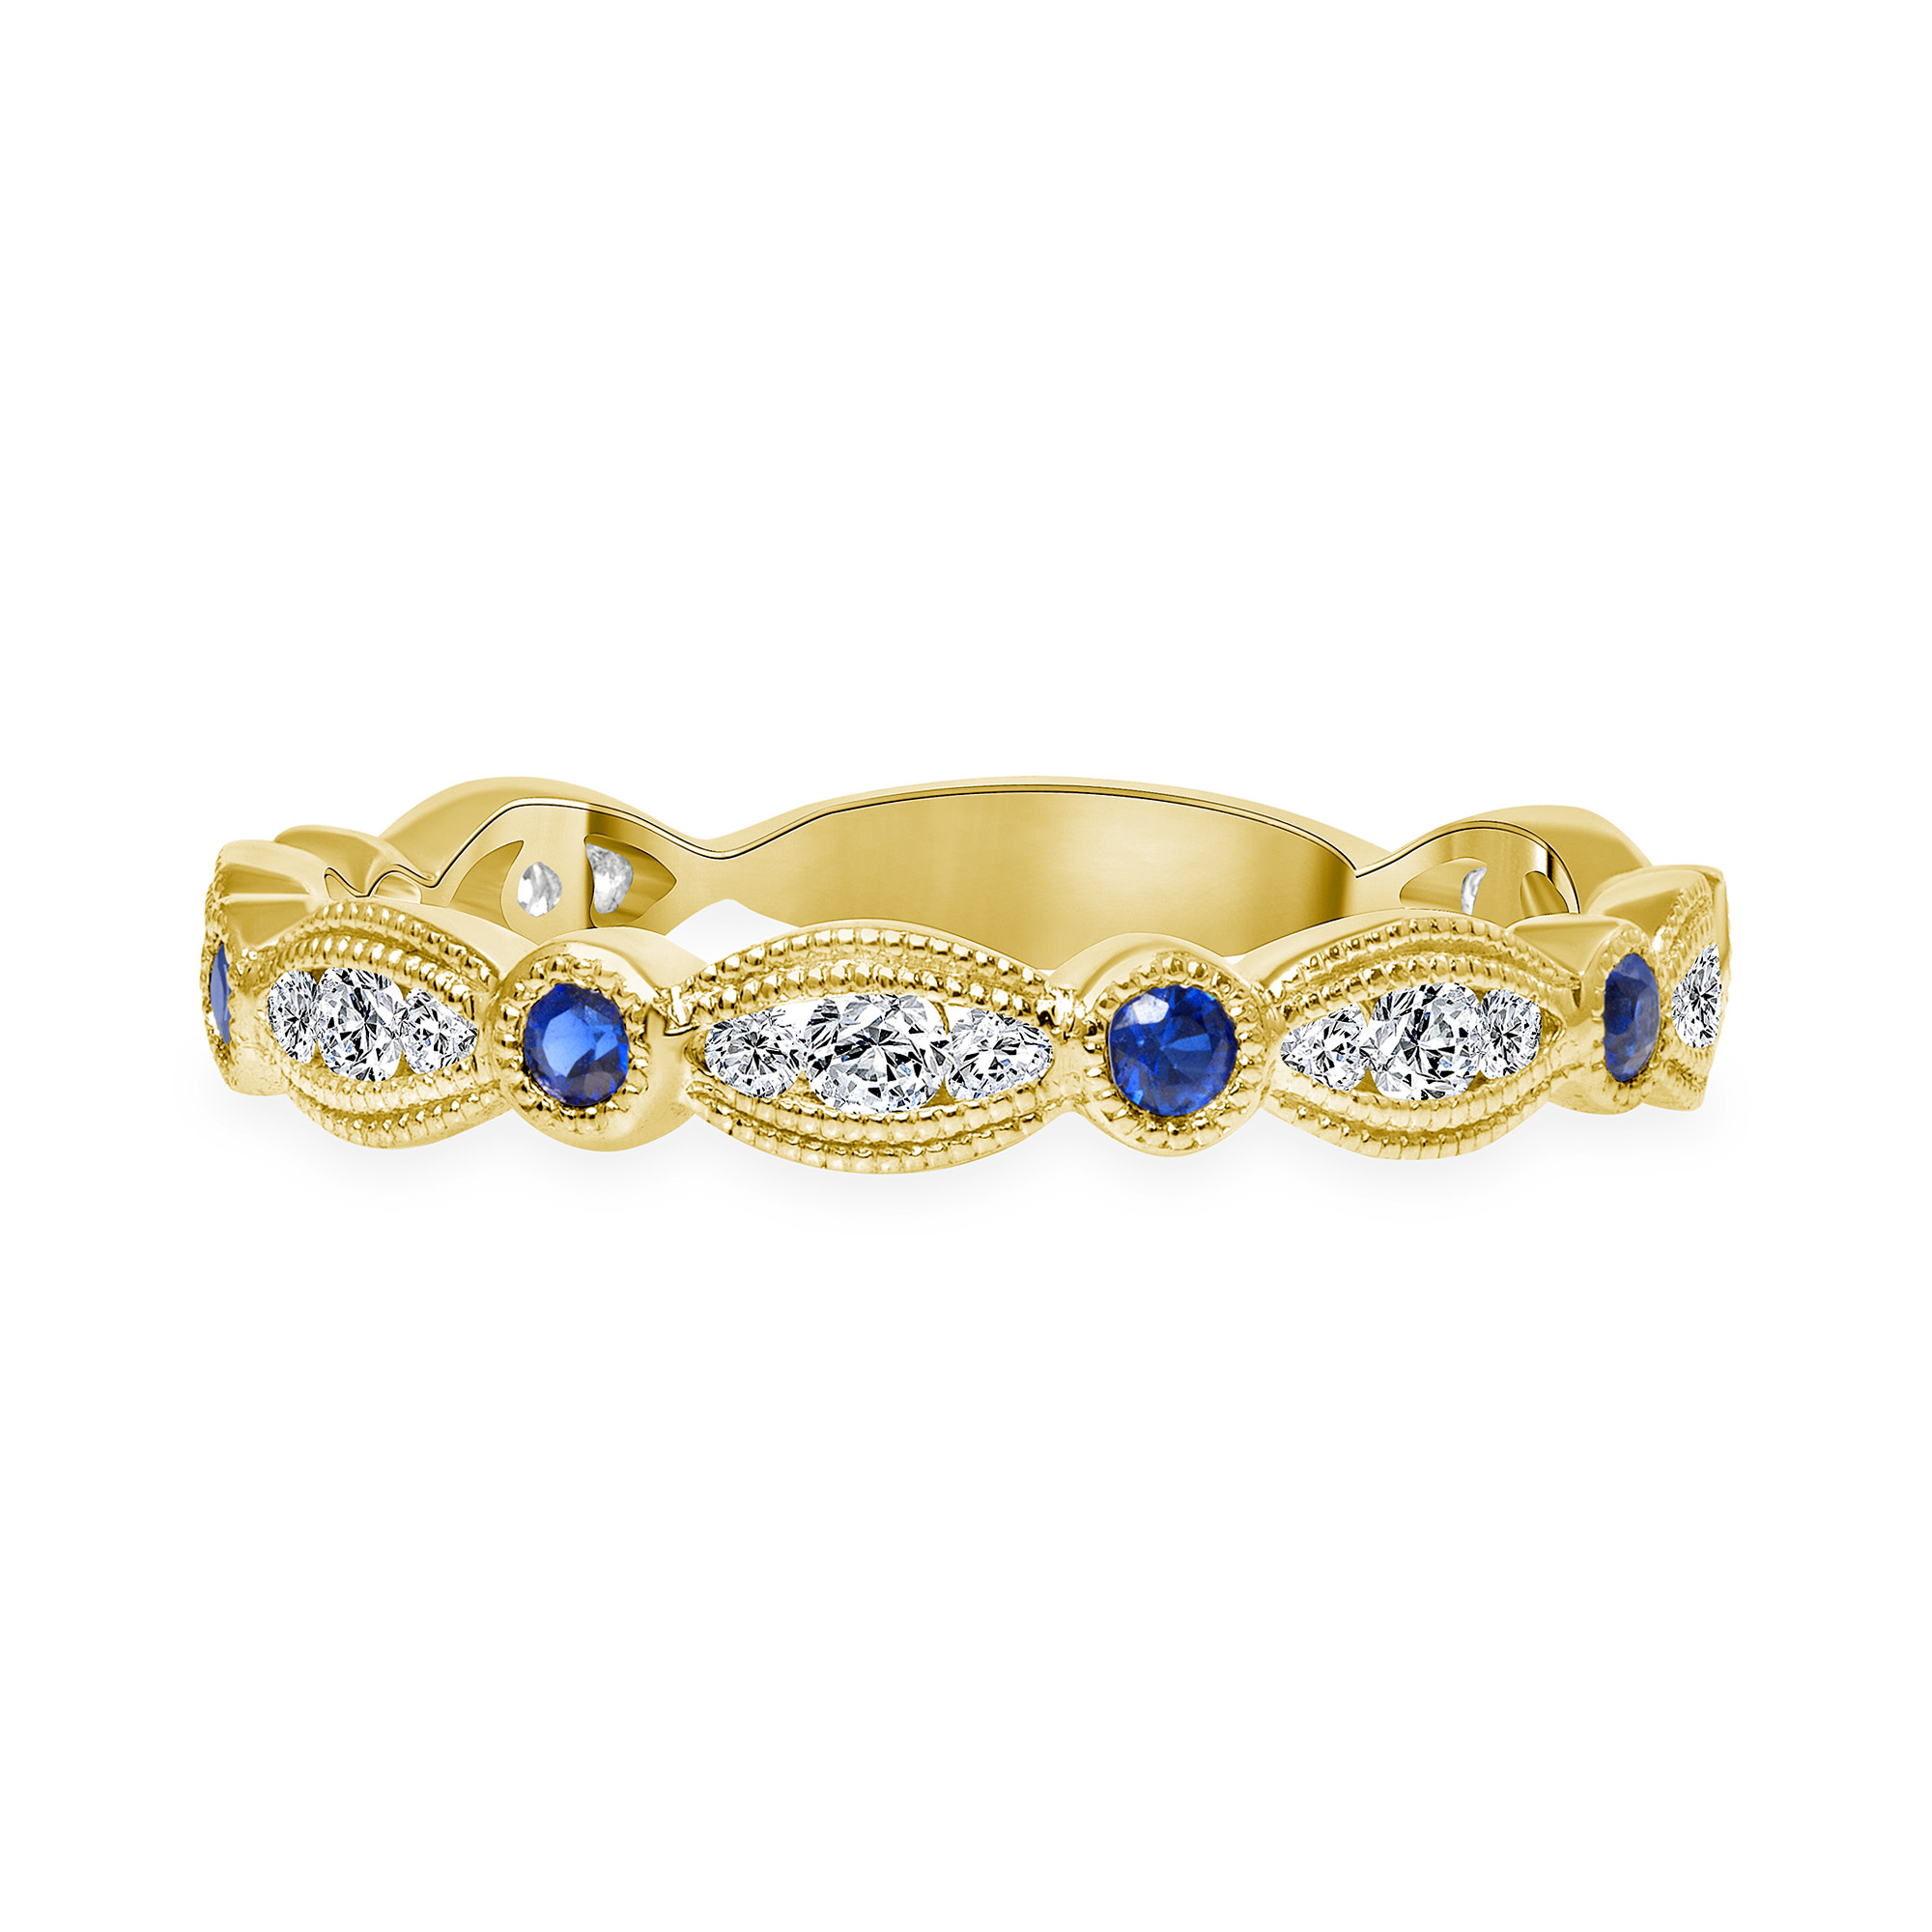 diamond blue sapphire wedding ring | diamond and sapphire wedding ring